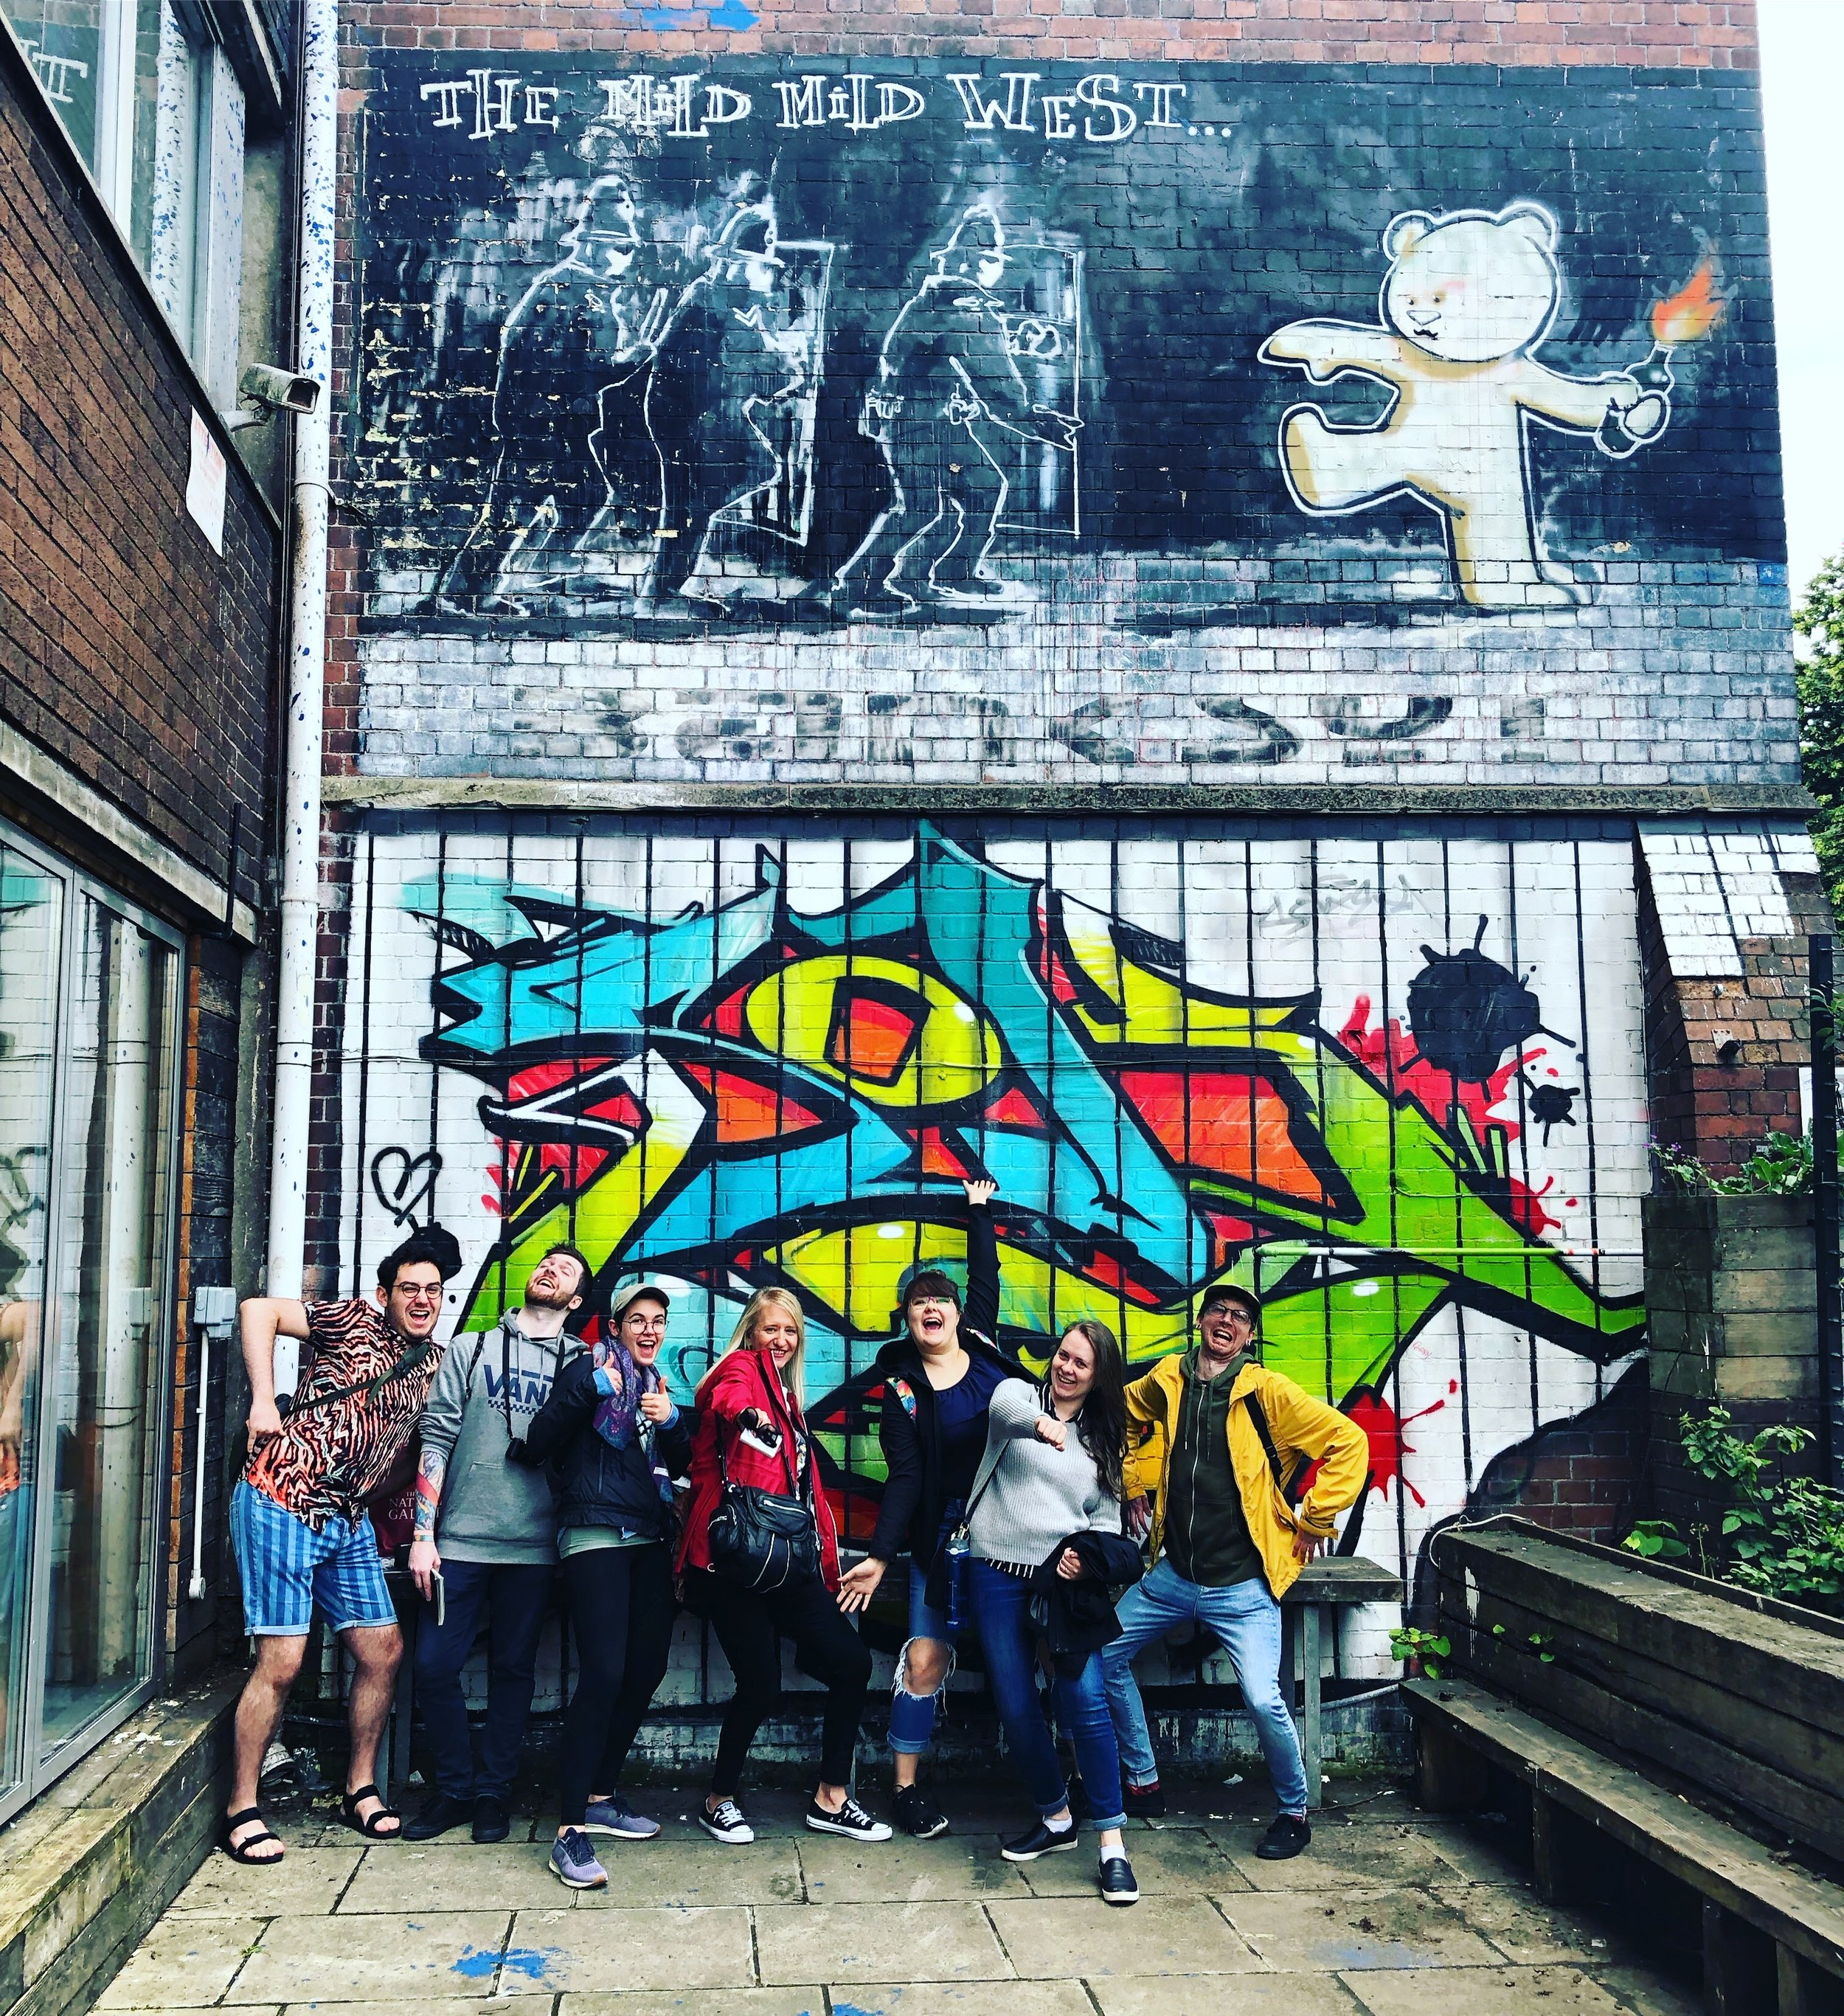 The trip to Bristol was a day to remember. Pictured left to right in front of the oldest public Banksy work in Bristol:: Adam, Steven, Leah, Dorothy, Victoria, Alison, and Mark.